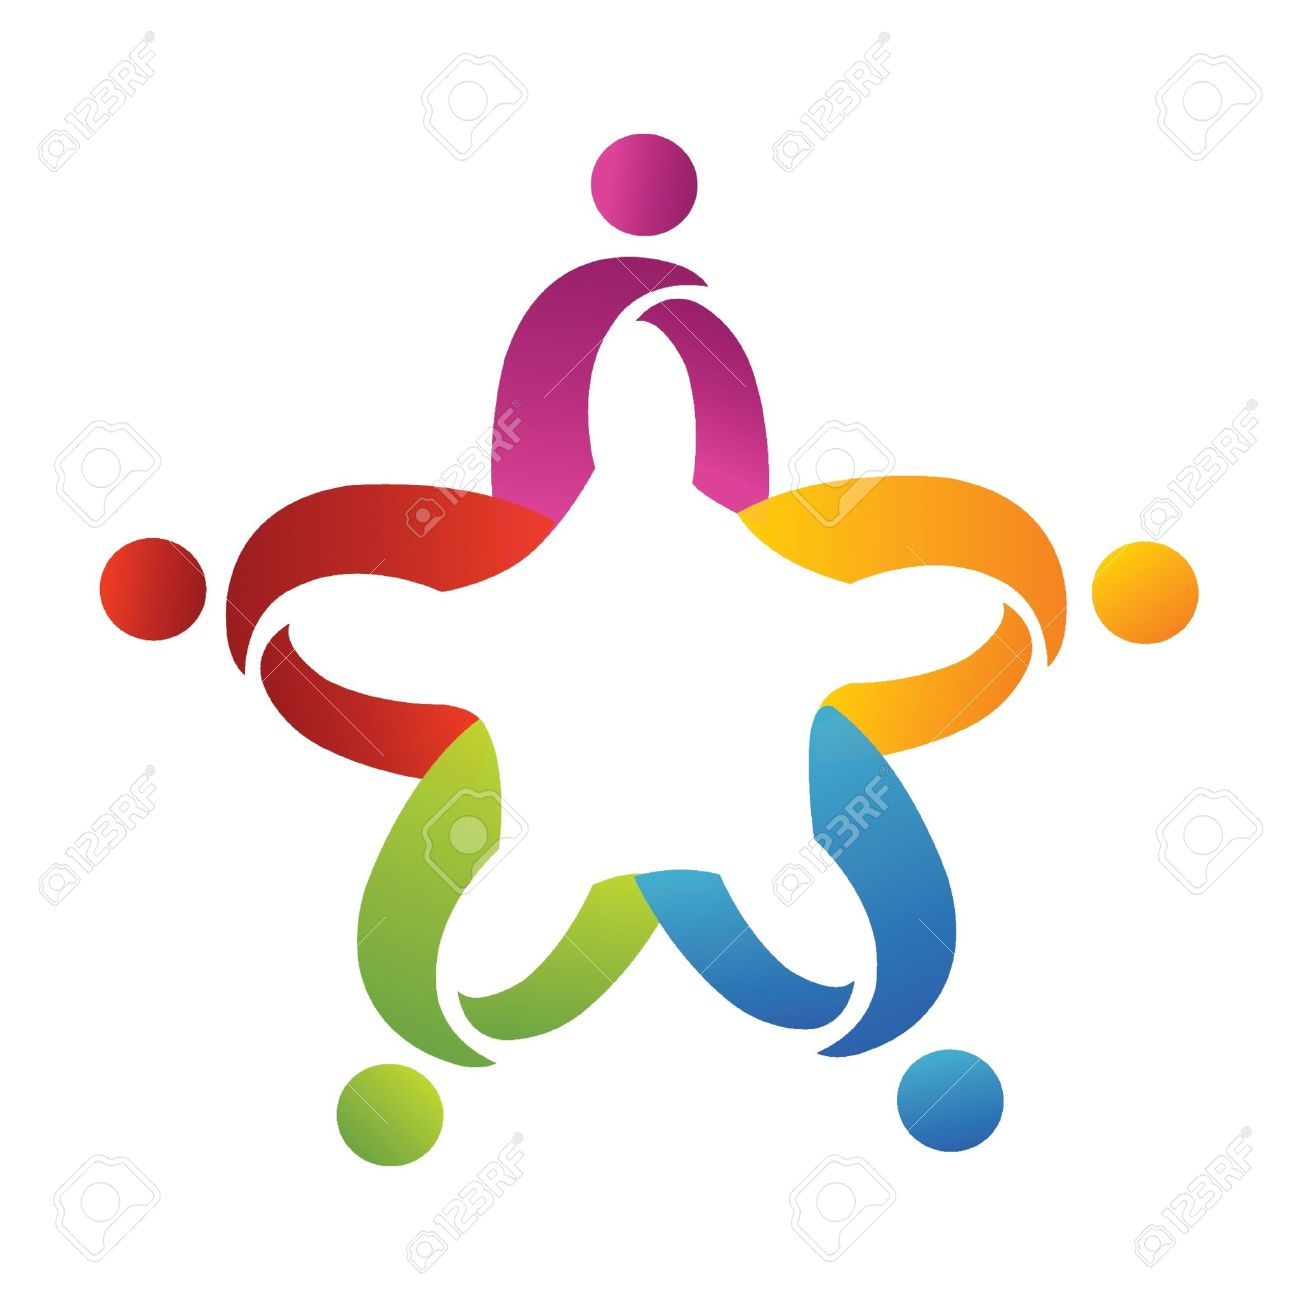 Teamwork abstract people helping logo Stock Vector - 11020790